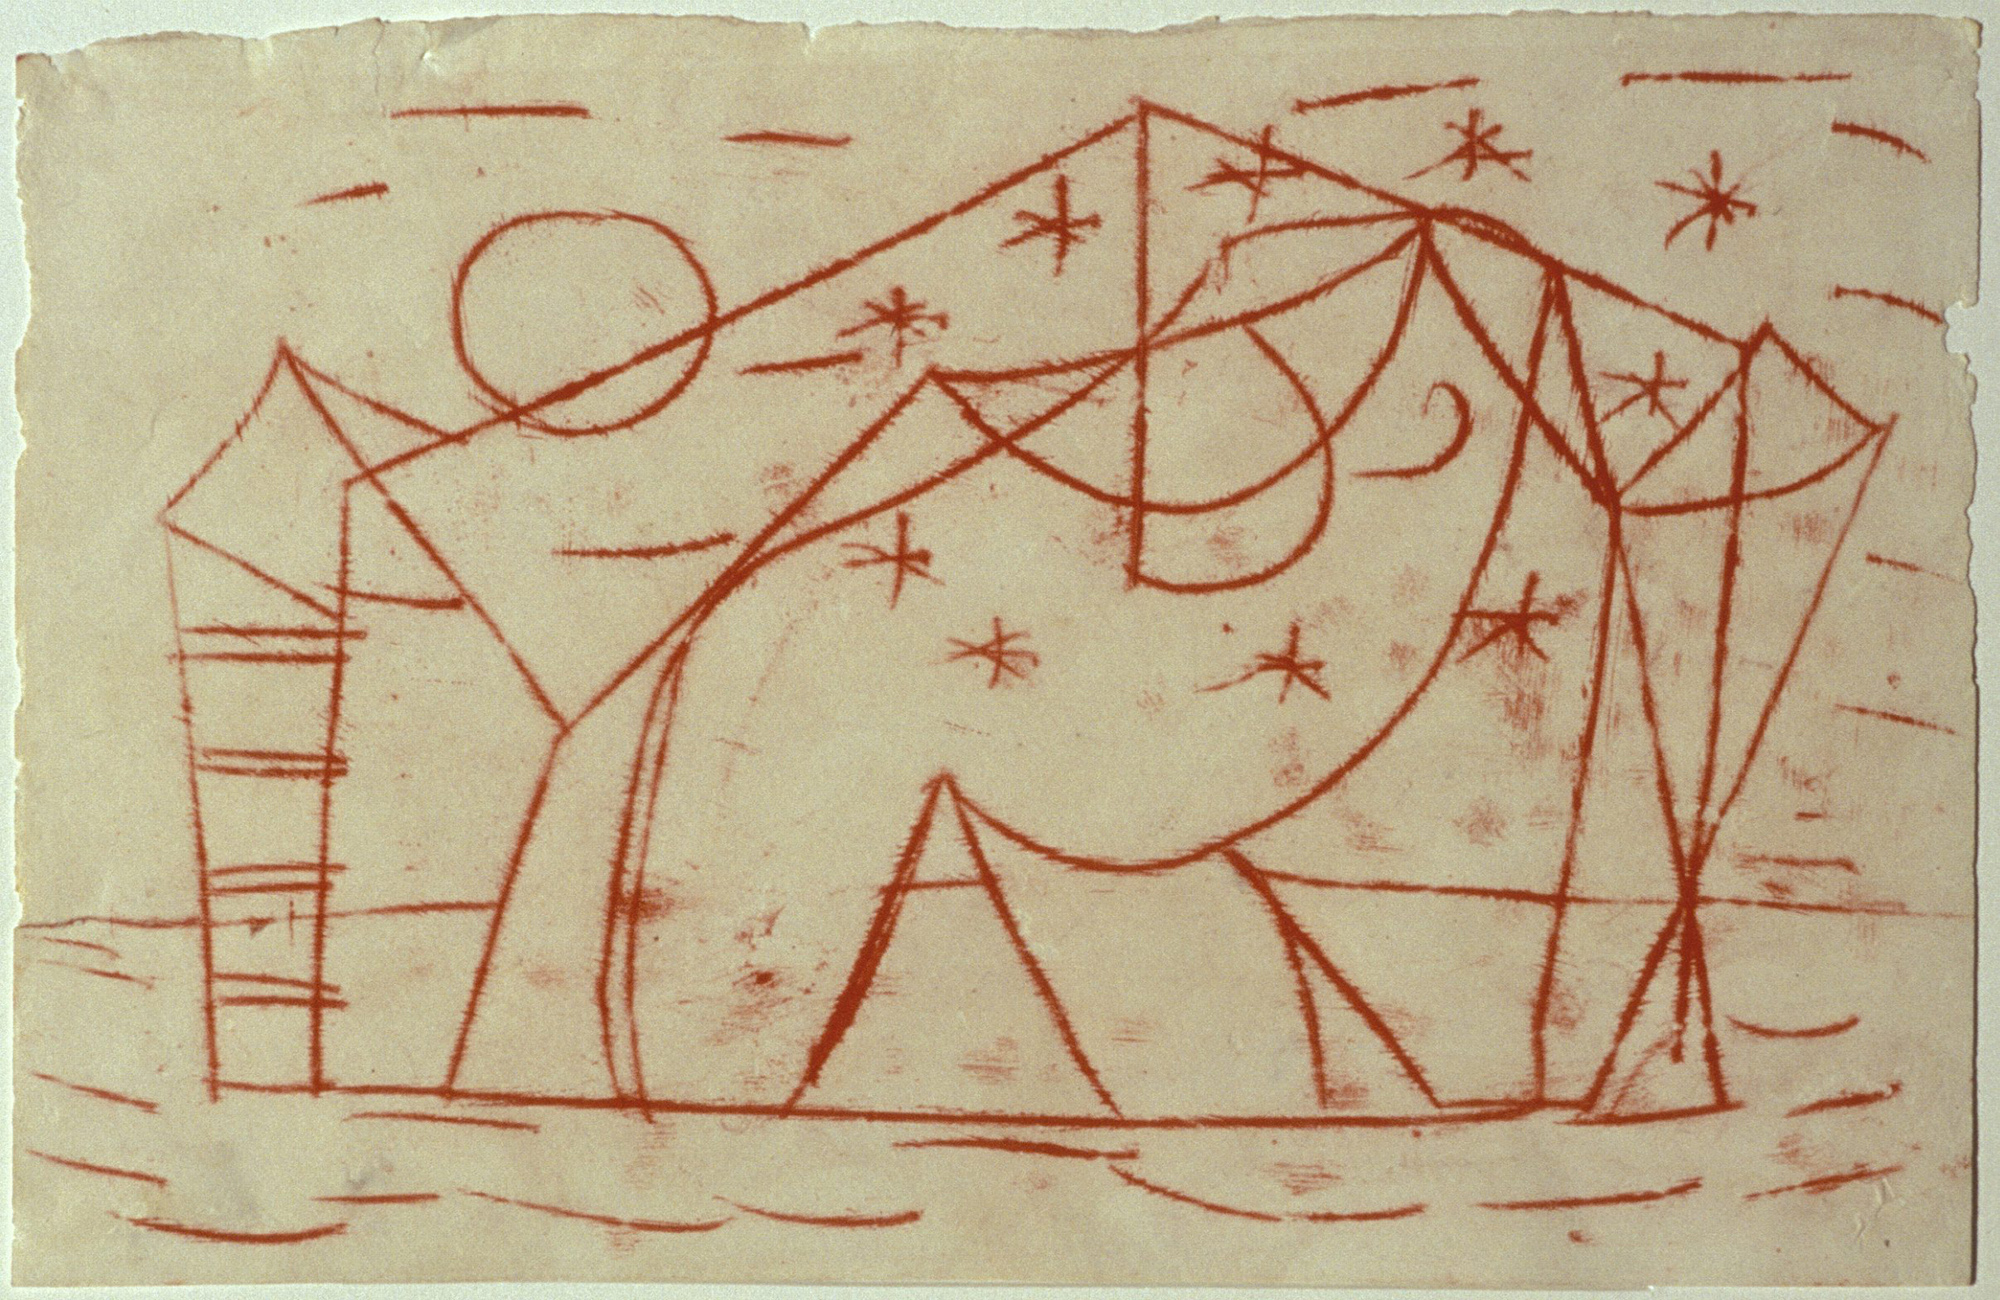 Sidney Nolan  Abstract Drawing  c.1940 transfer drawing on tissue paper 28.5 x 44.5 cm Heide Museum of Modern Art, Melbourne Bequest of John and Sunday Reed 1982 © Sidney Nolan Trust